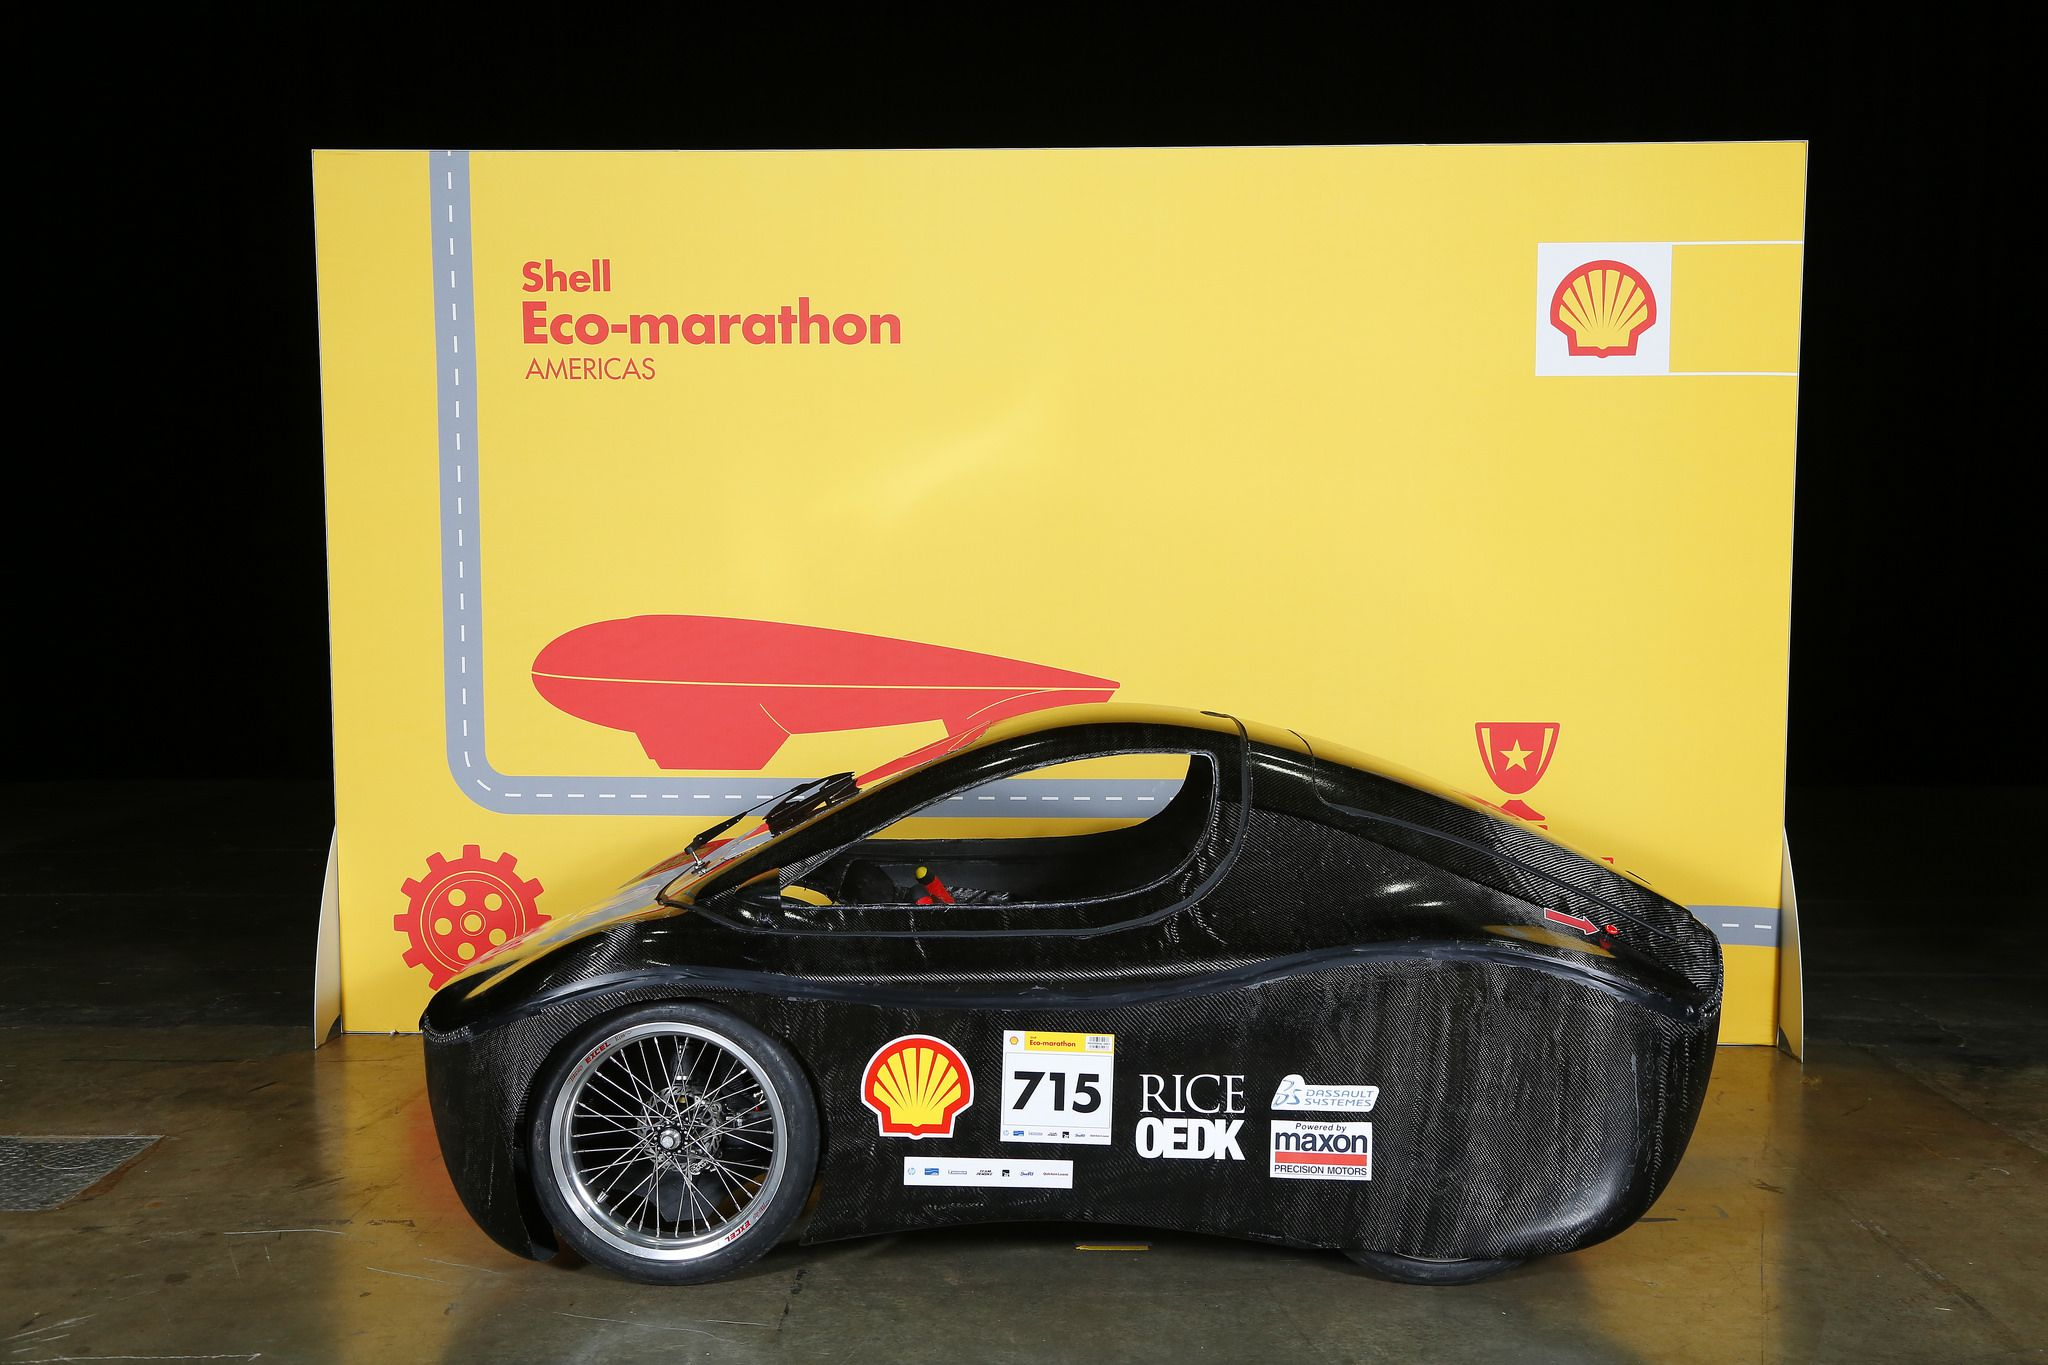 Https flic kr p s51gf9 shell eco marathon americas day two the gemini 715 battery electric urbanconcept competing for team rice solar car team 2